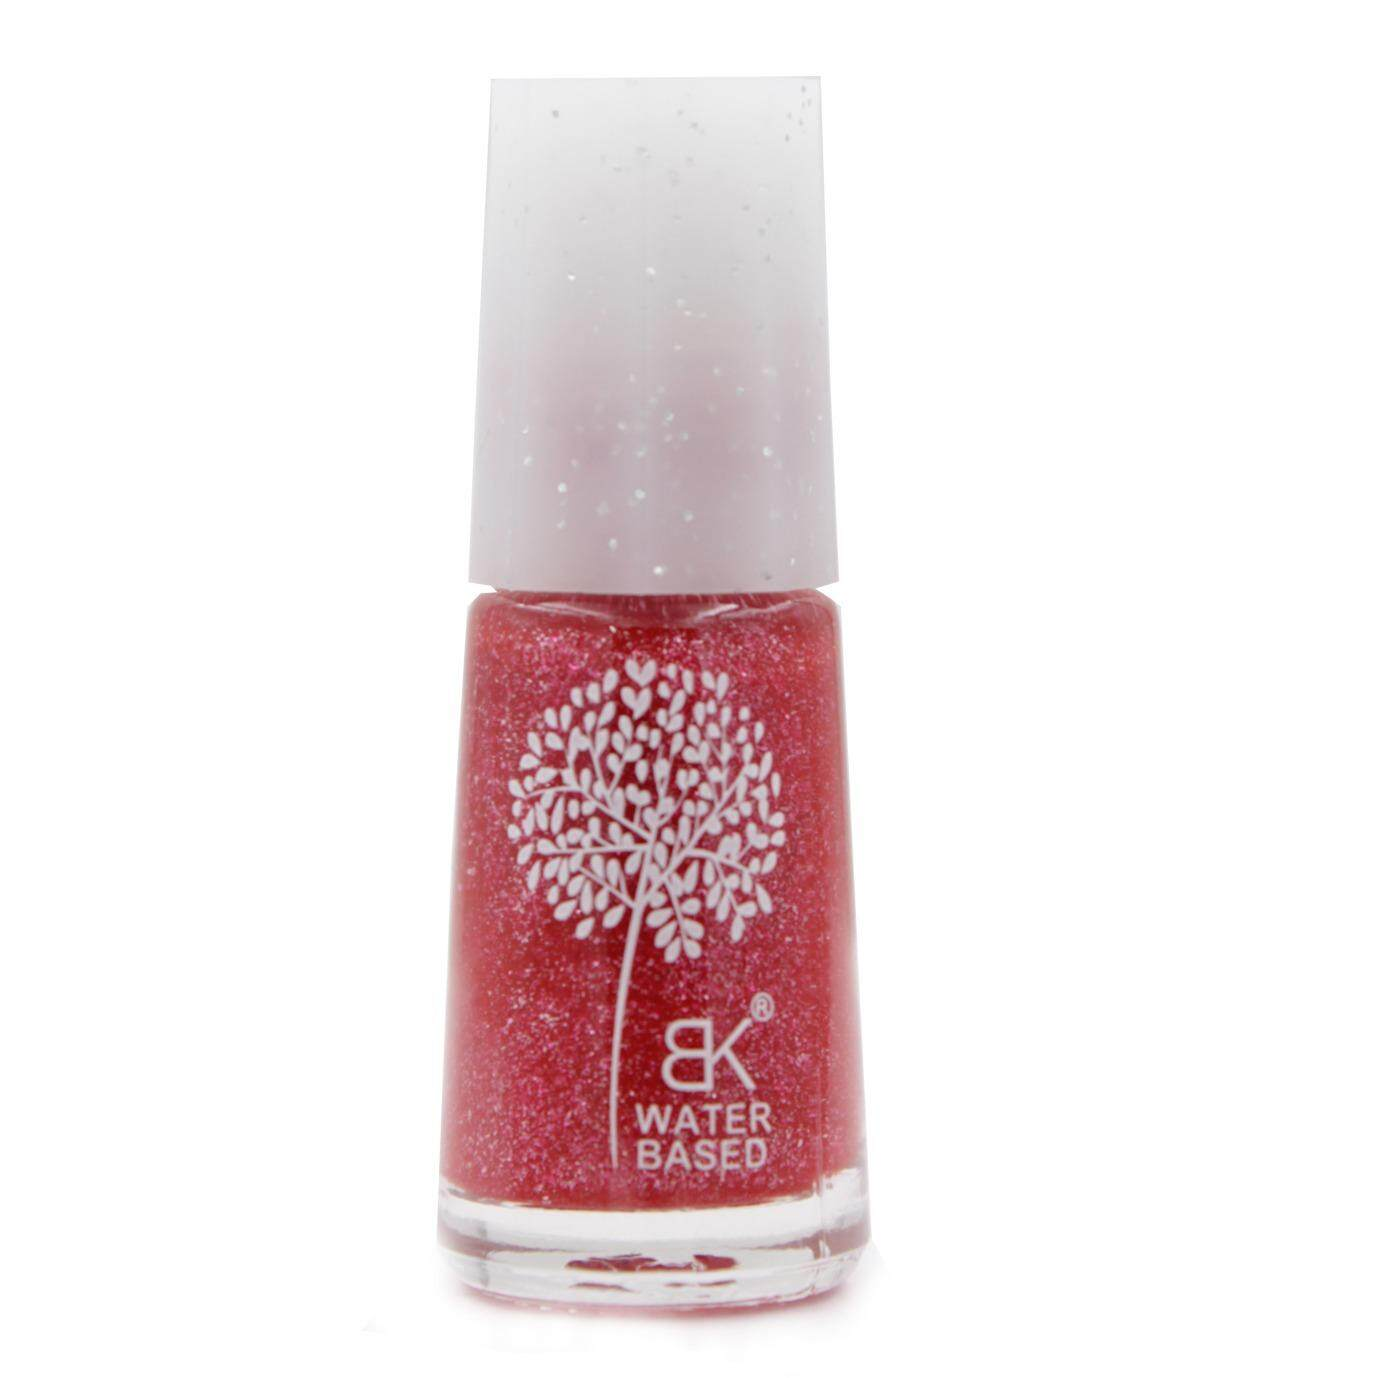 Nail Polish for the Best Price in Malaysia